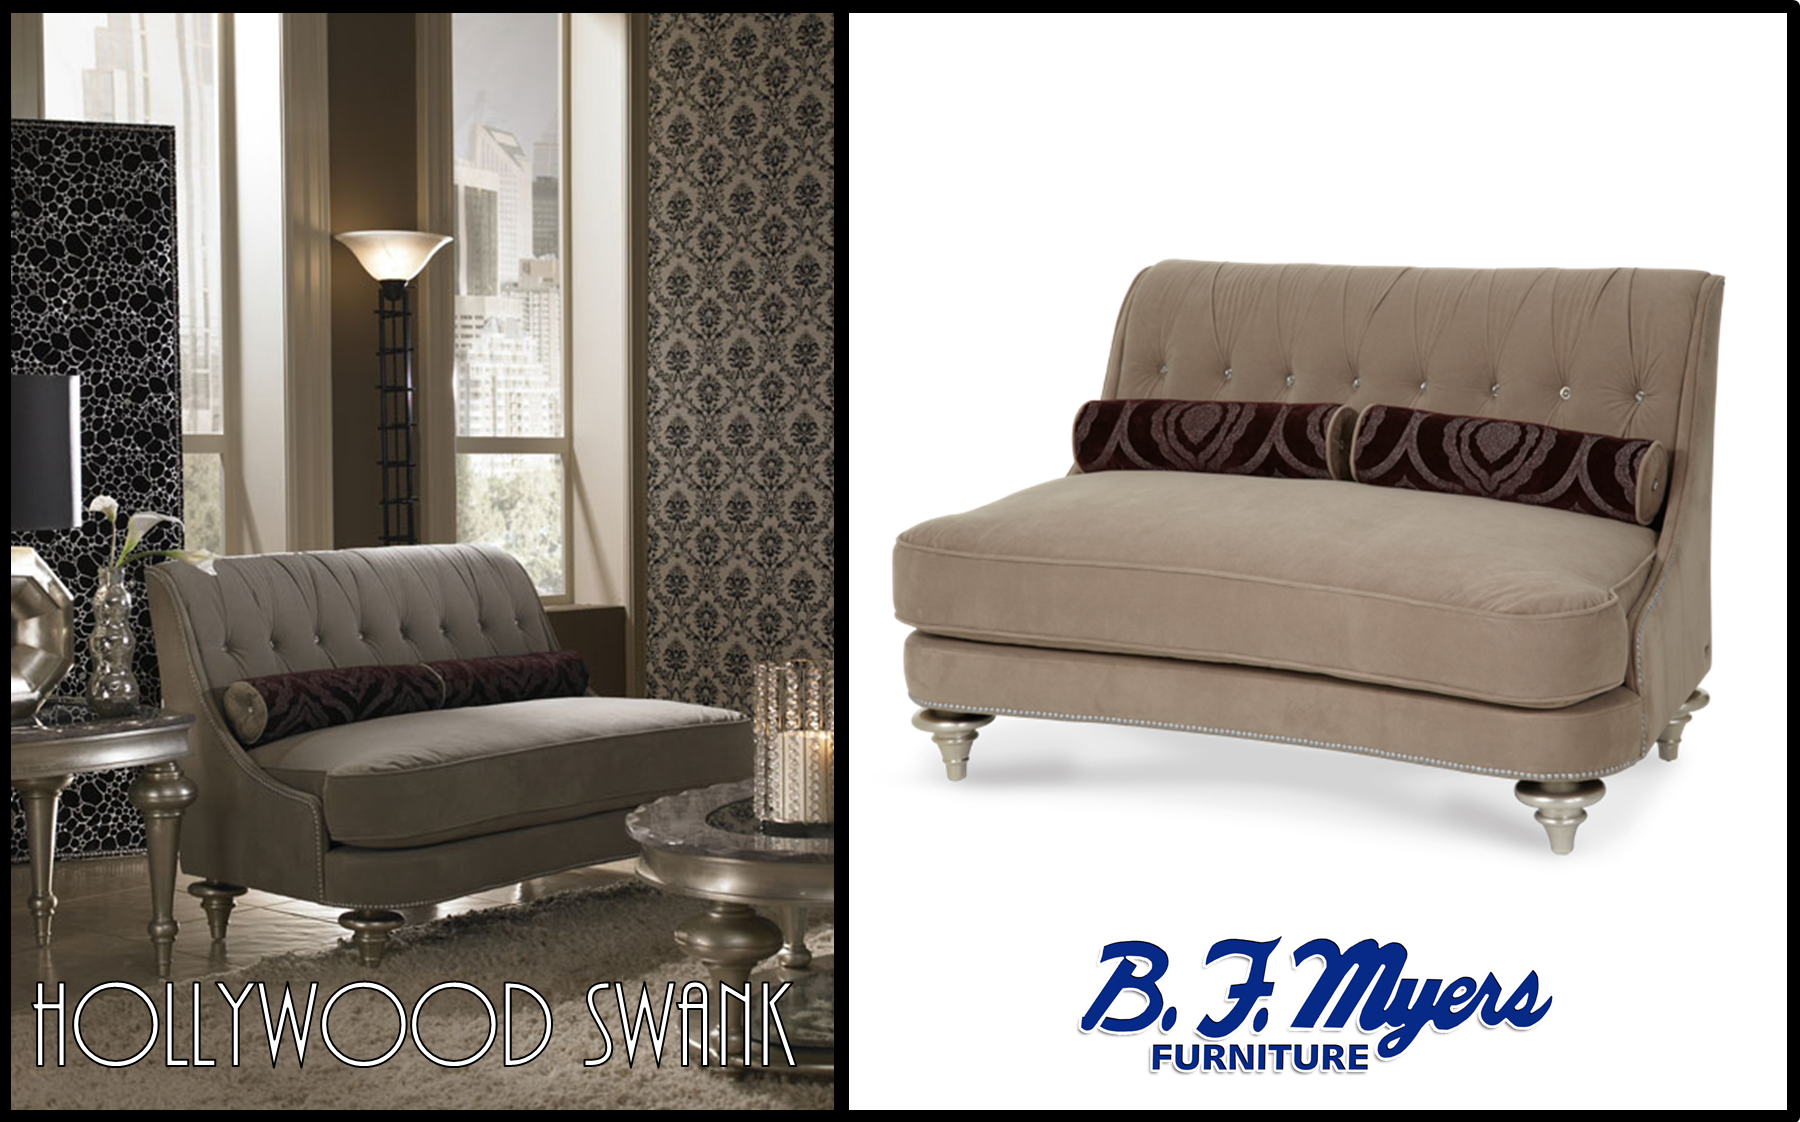 #HollywoodSwank Taupe Living Room Settee AVAILABLE AT B.F. MYERS FURNITURE  In Goodlettsville, TN